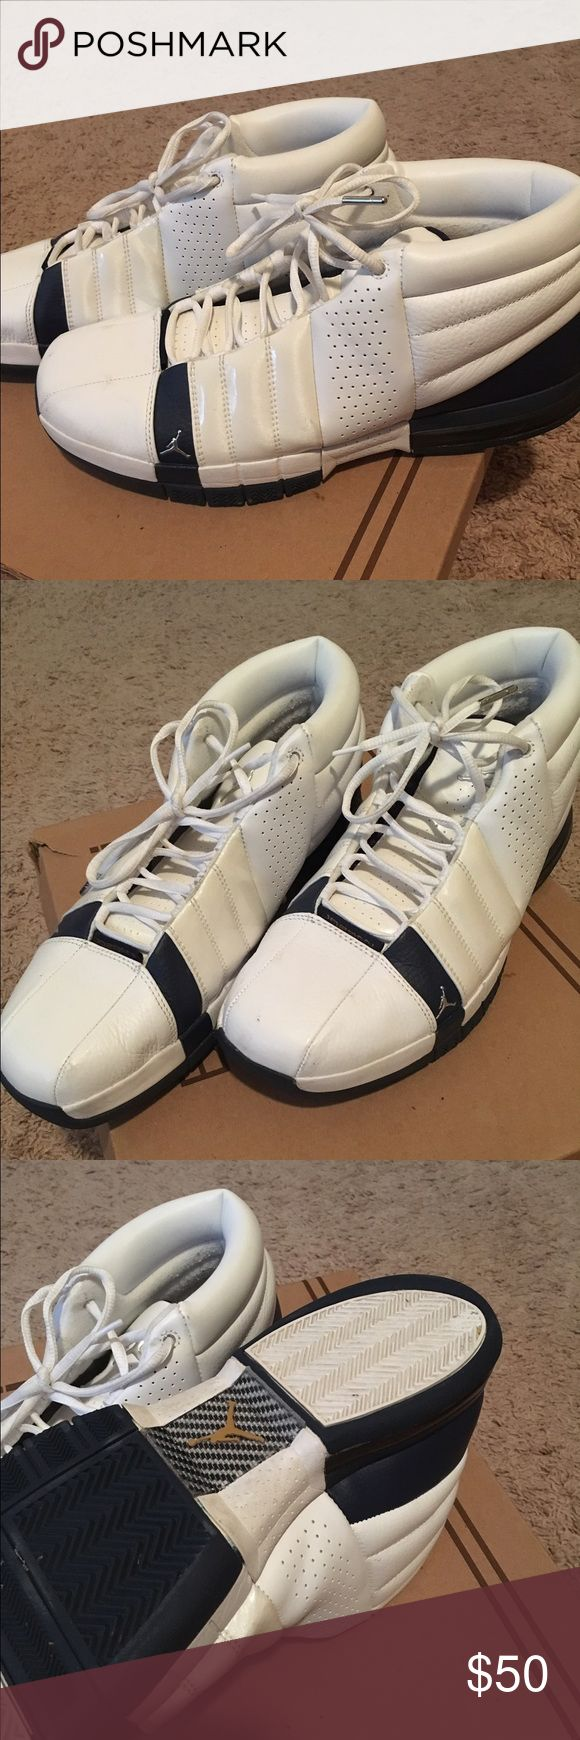 Air Jordan Basketball Sneakers Excellent condition Nike Shoes Sneakers